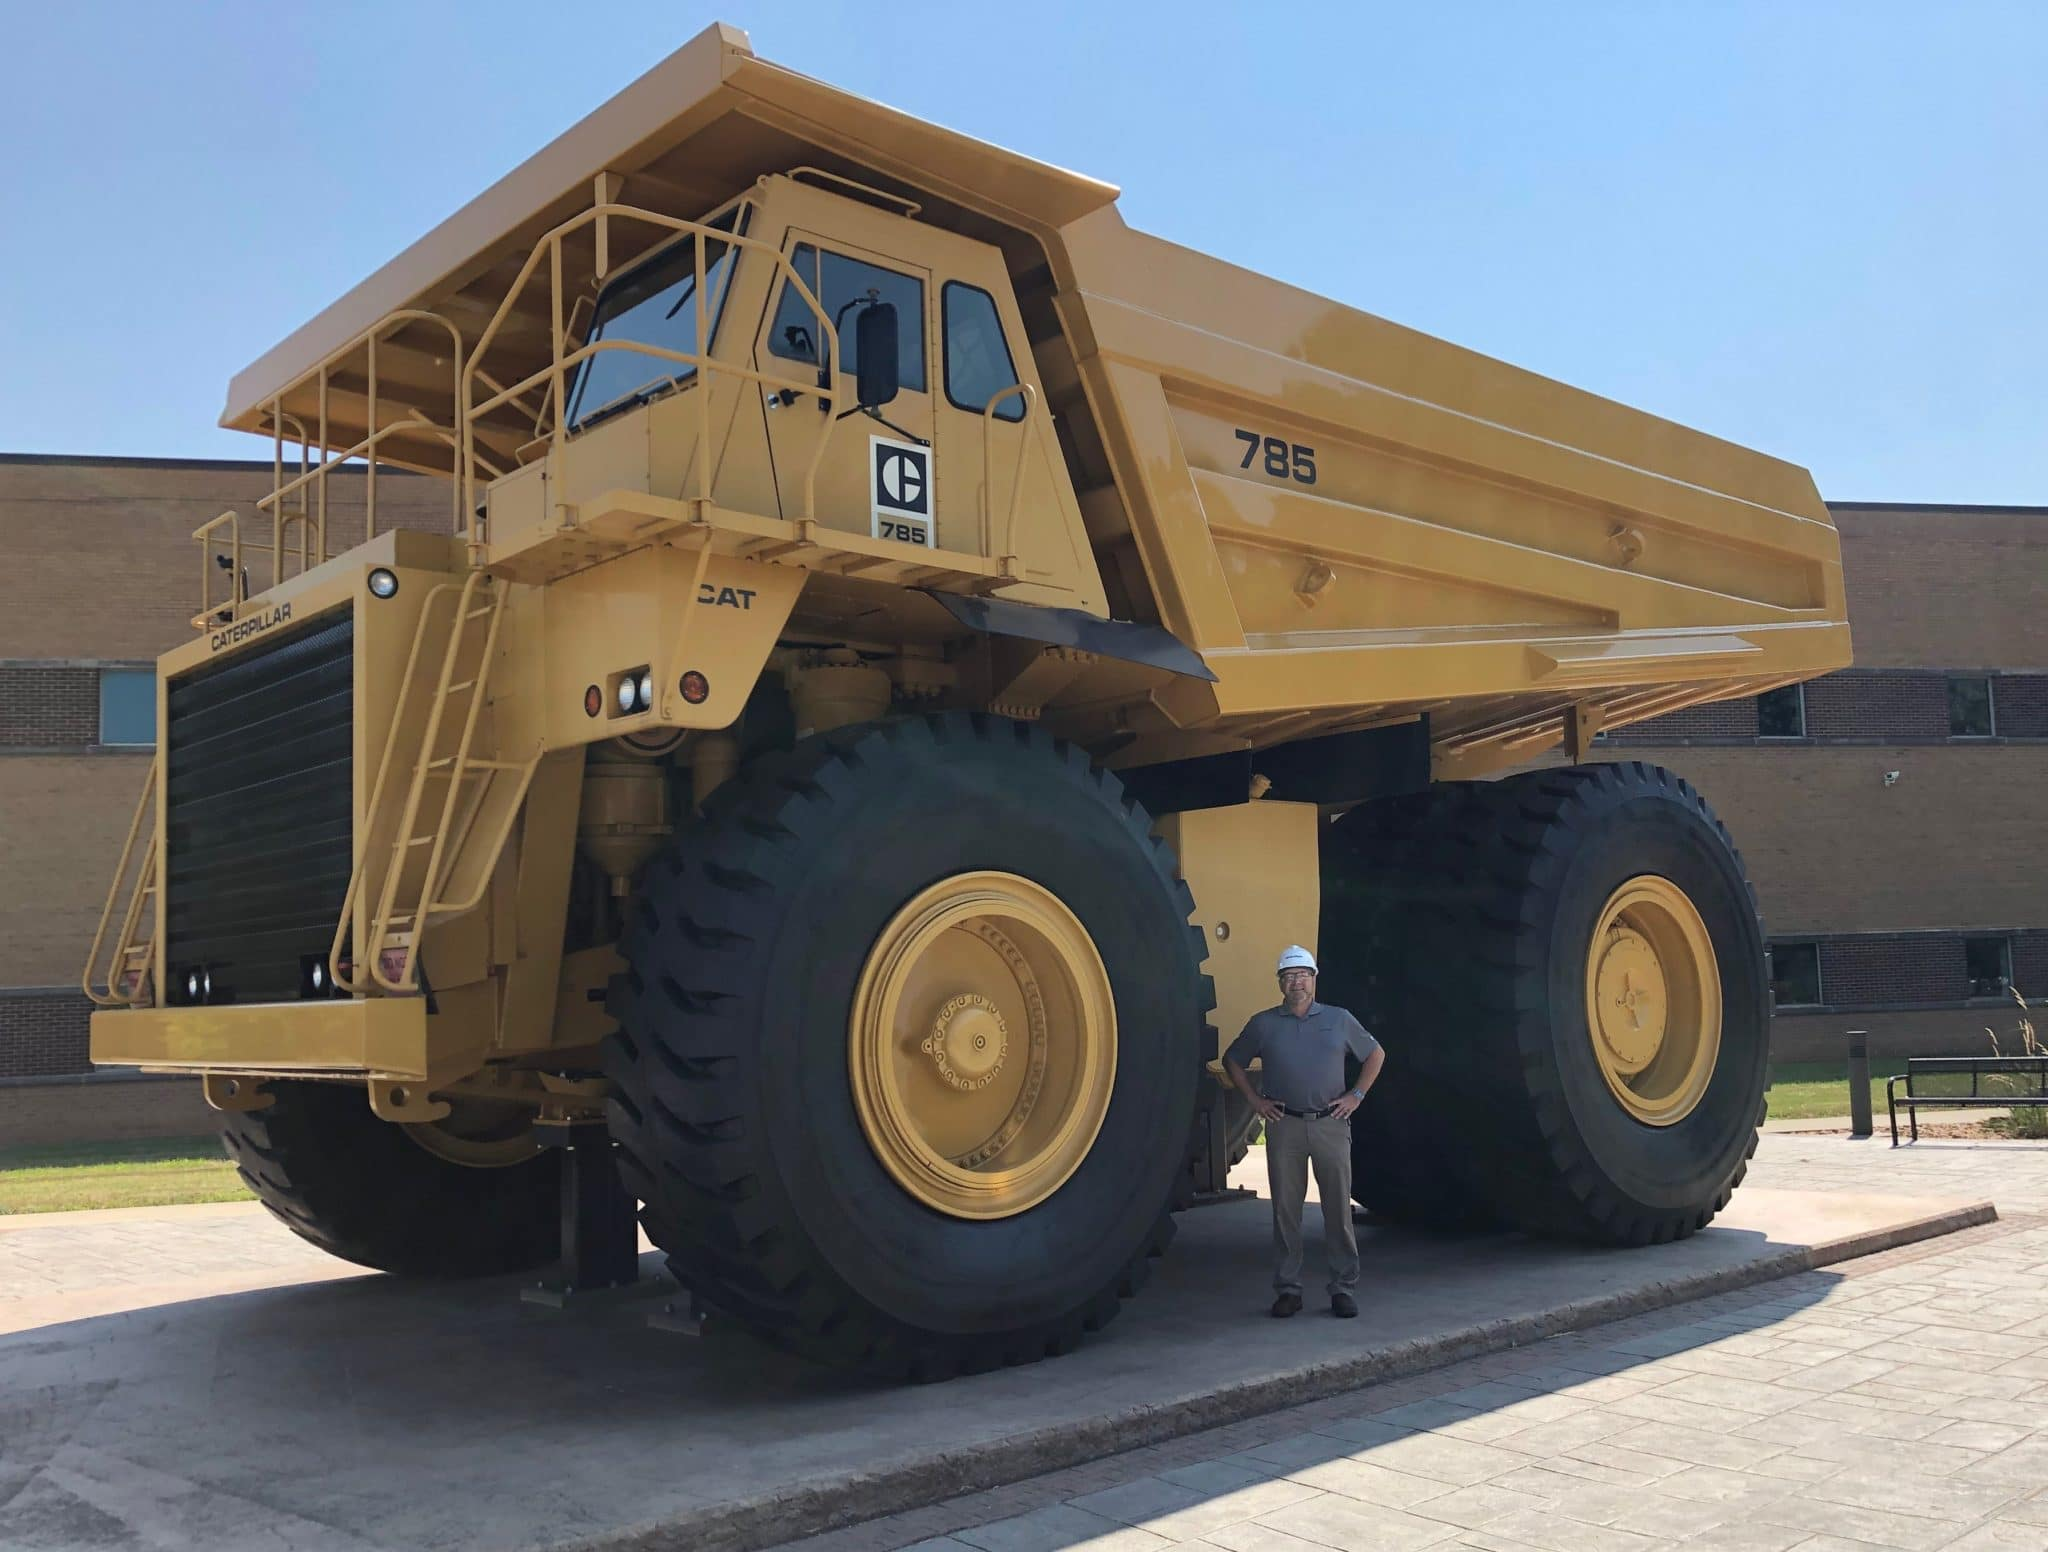 Amentum Caterpillar Truck